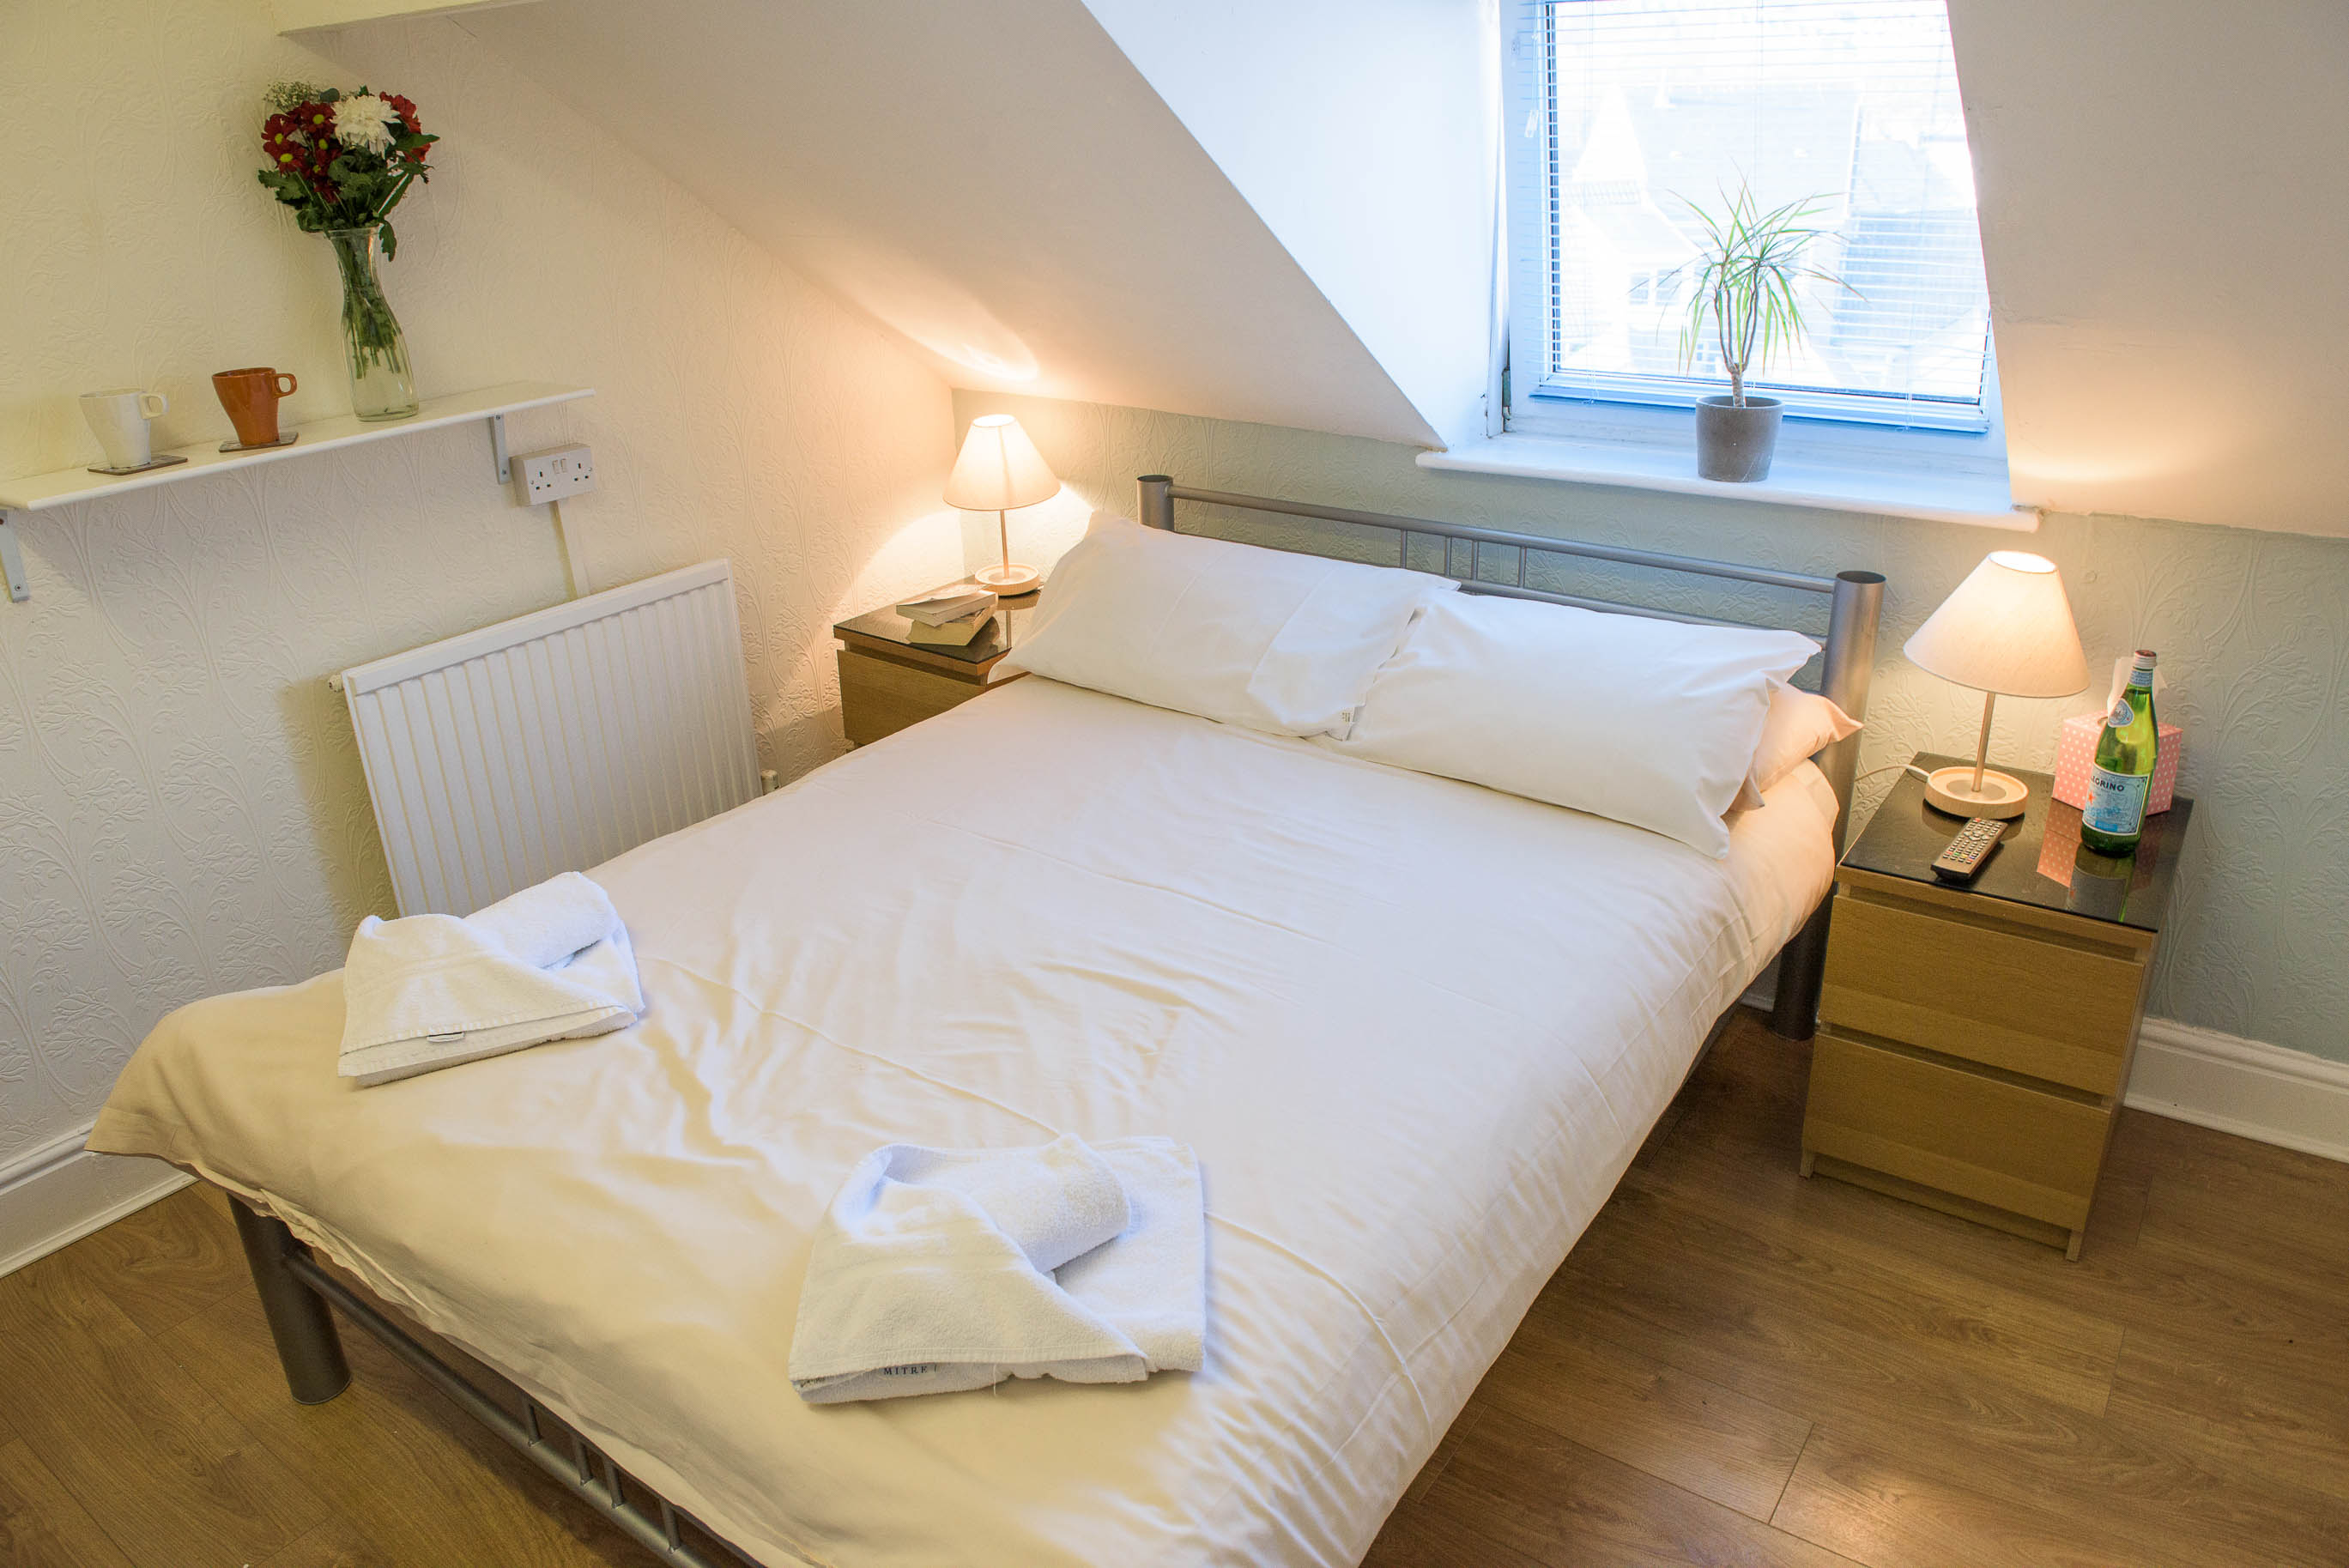 Double room with en-suite bathroom - bed and breakfast Swansea